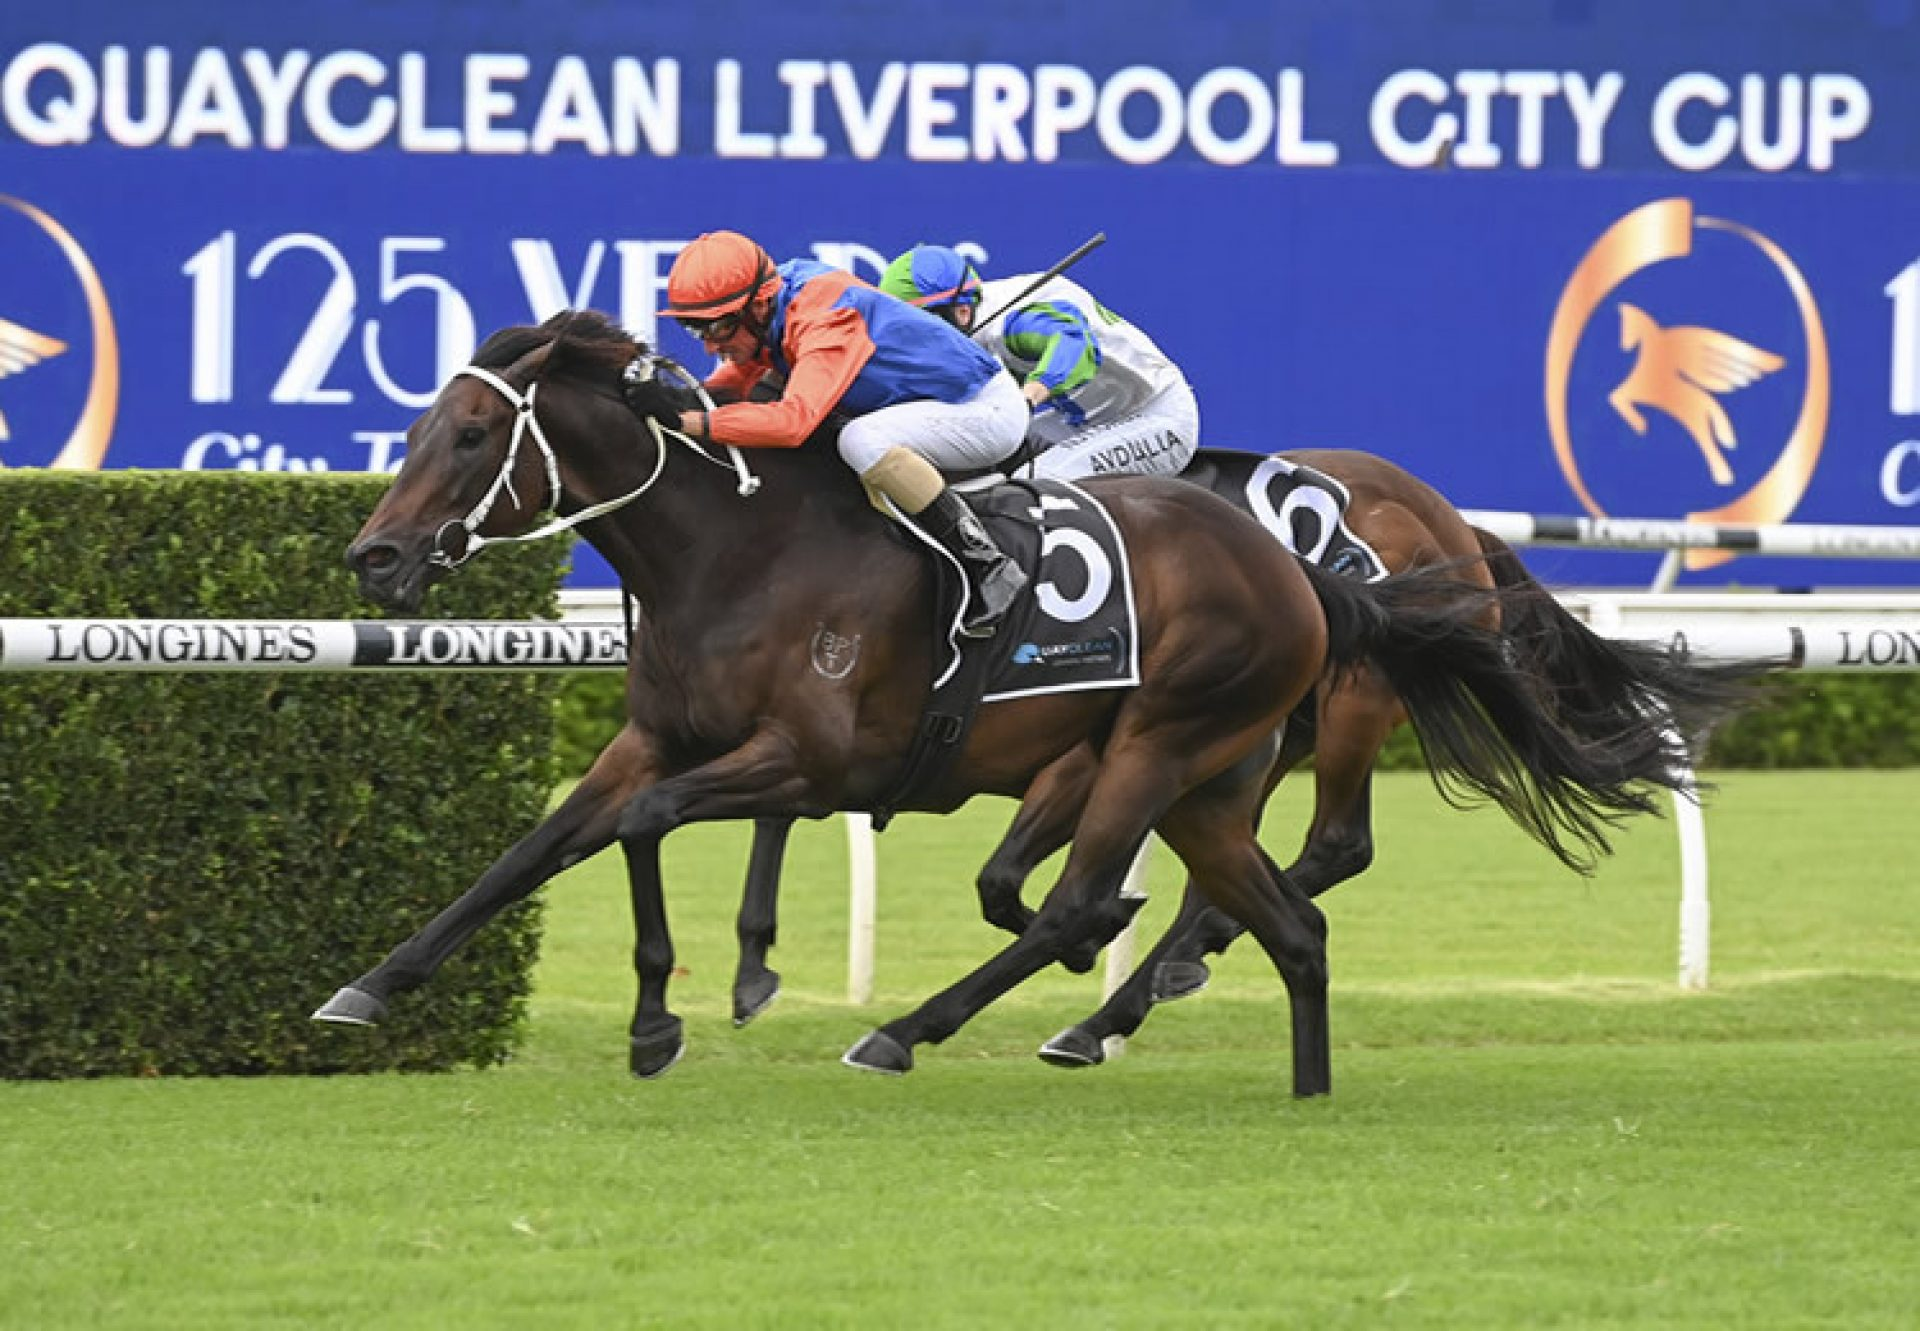 Think It Over (So You Think) wins the Gr.3 Liverpool City Cup at Randwick